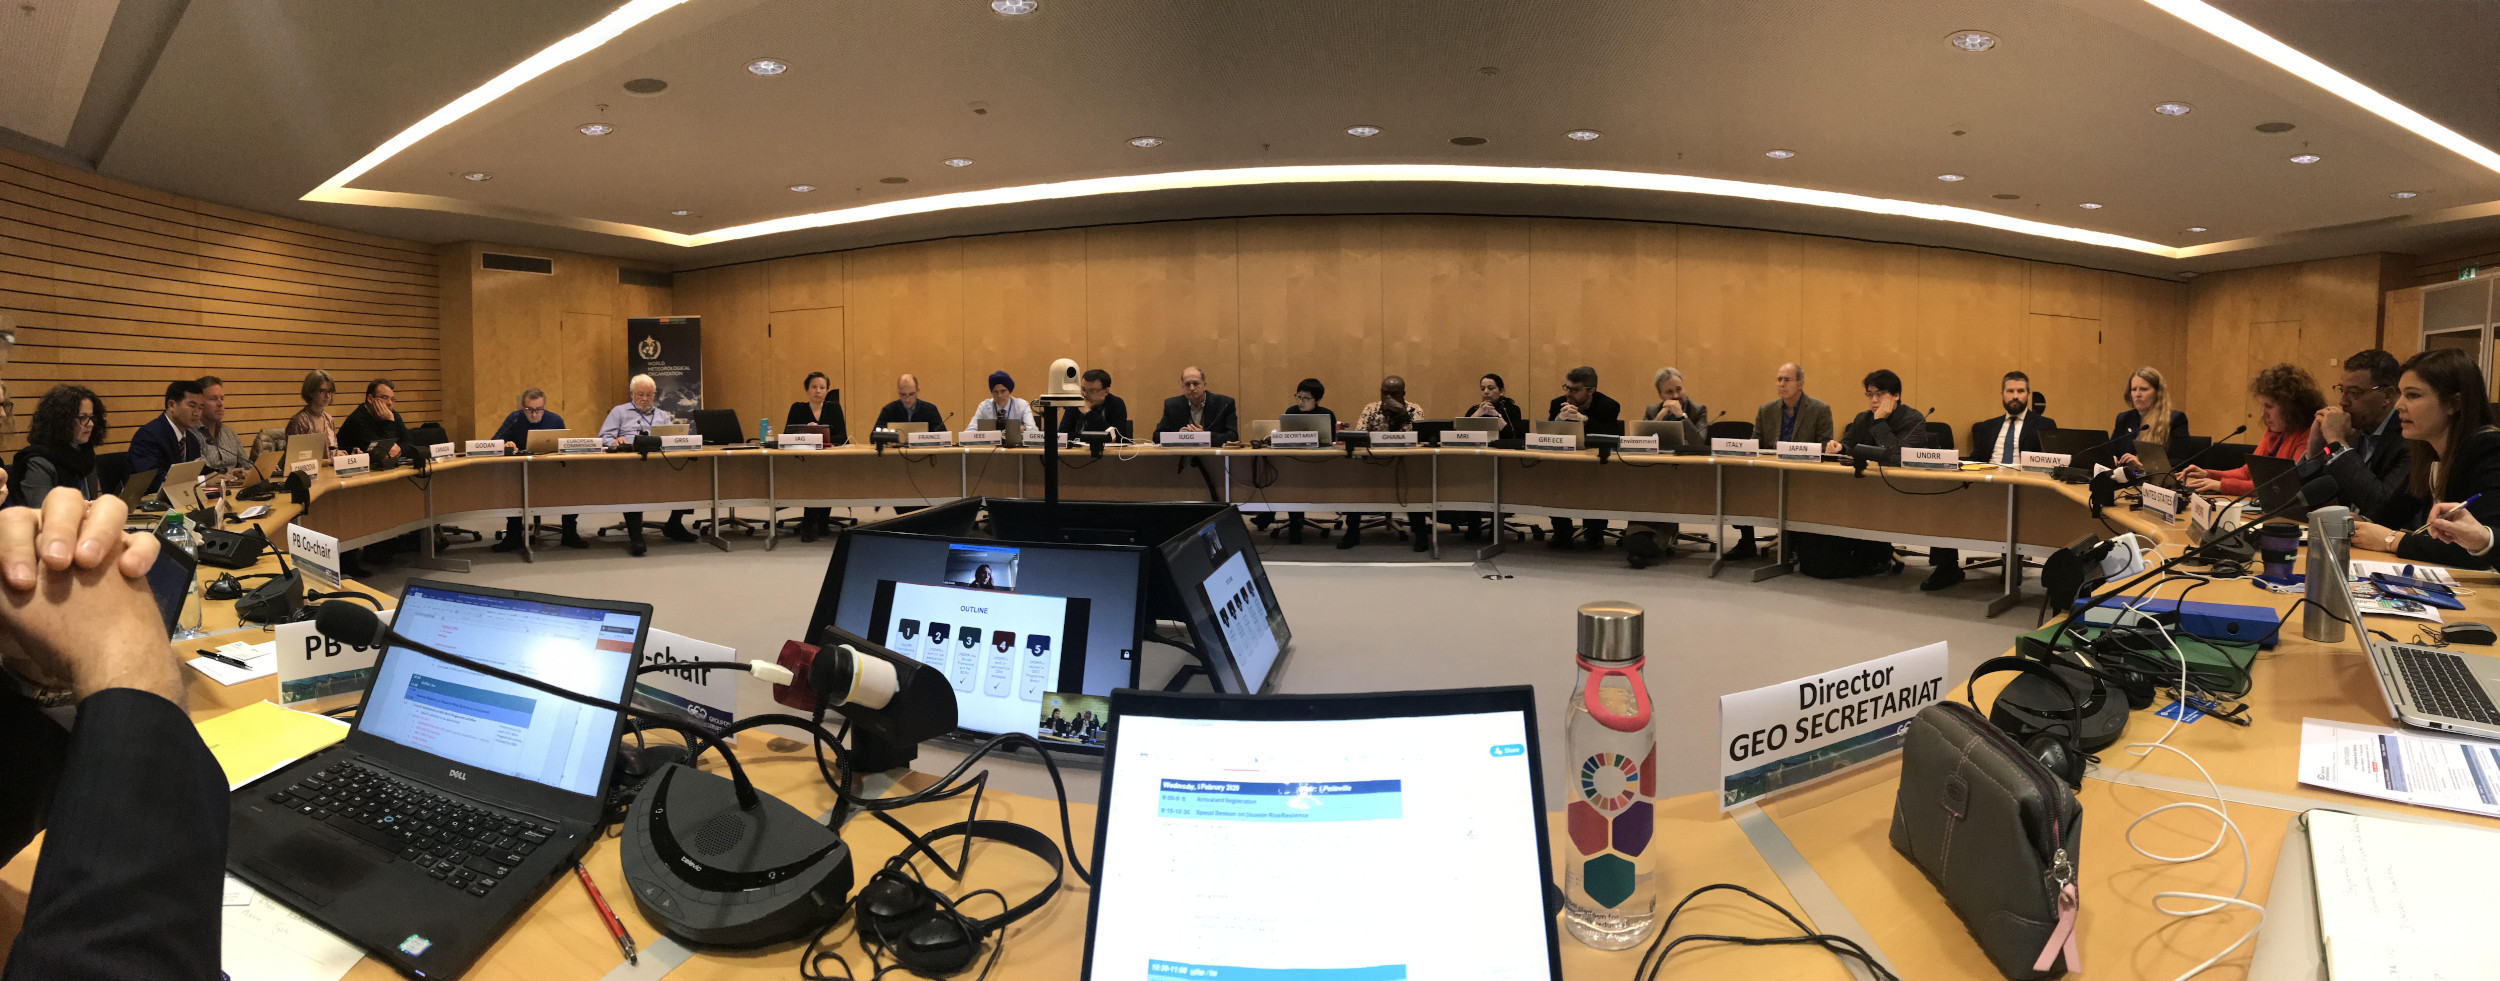 GEO Programme Board Meeting with United Nations Office of Disaster Risk Reduction (UNDRR) at WMO, Geneva, Switzerland